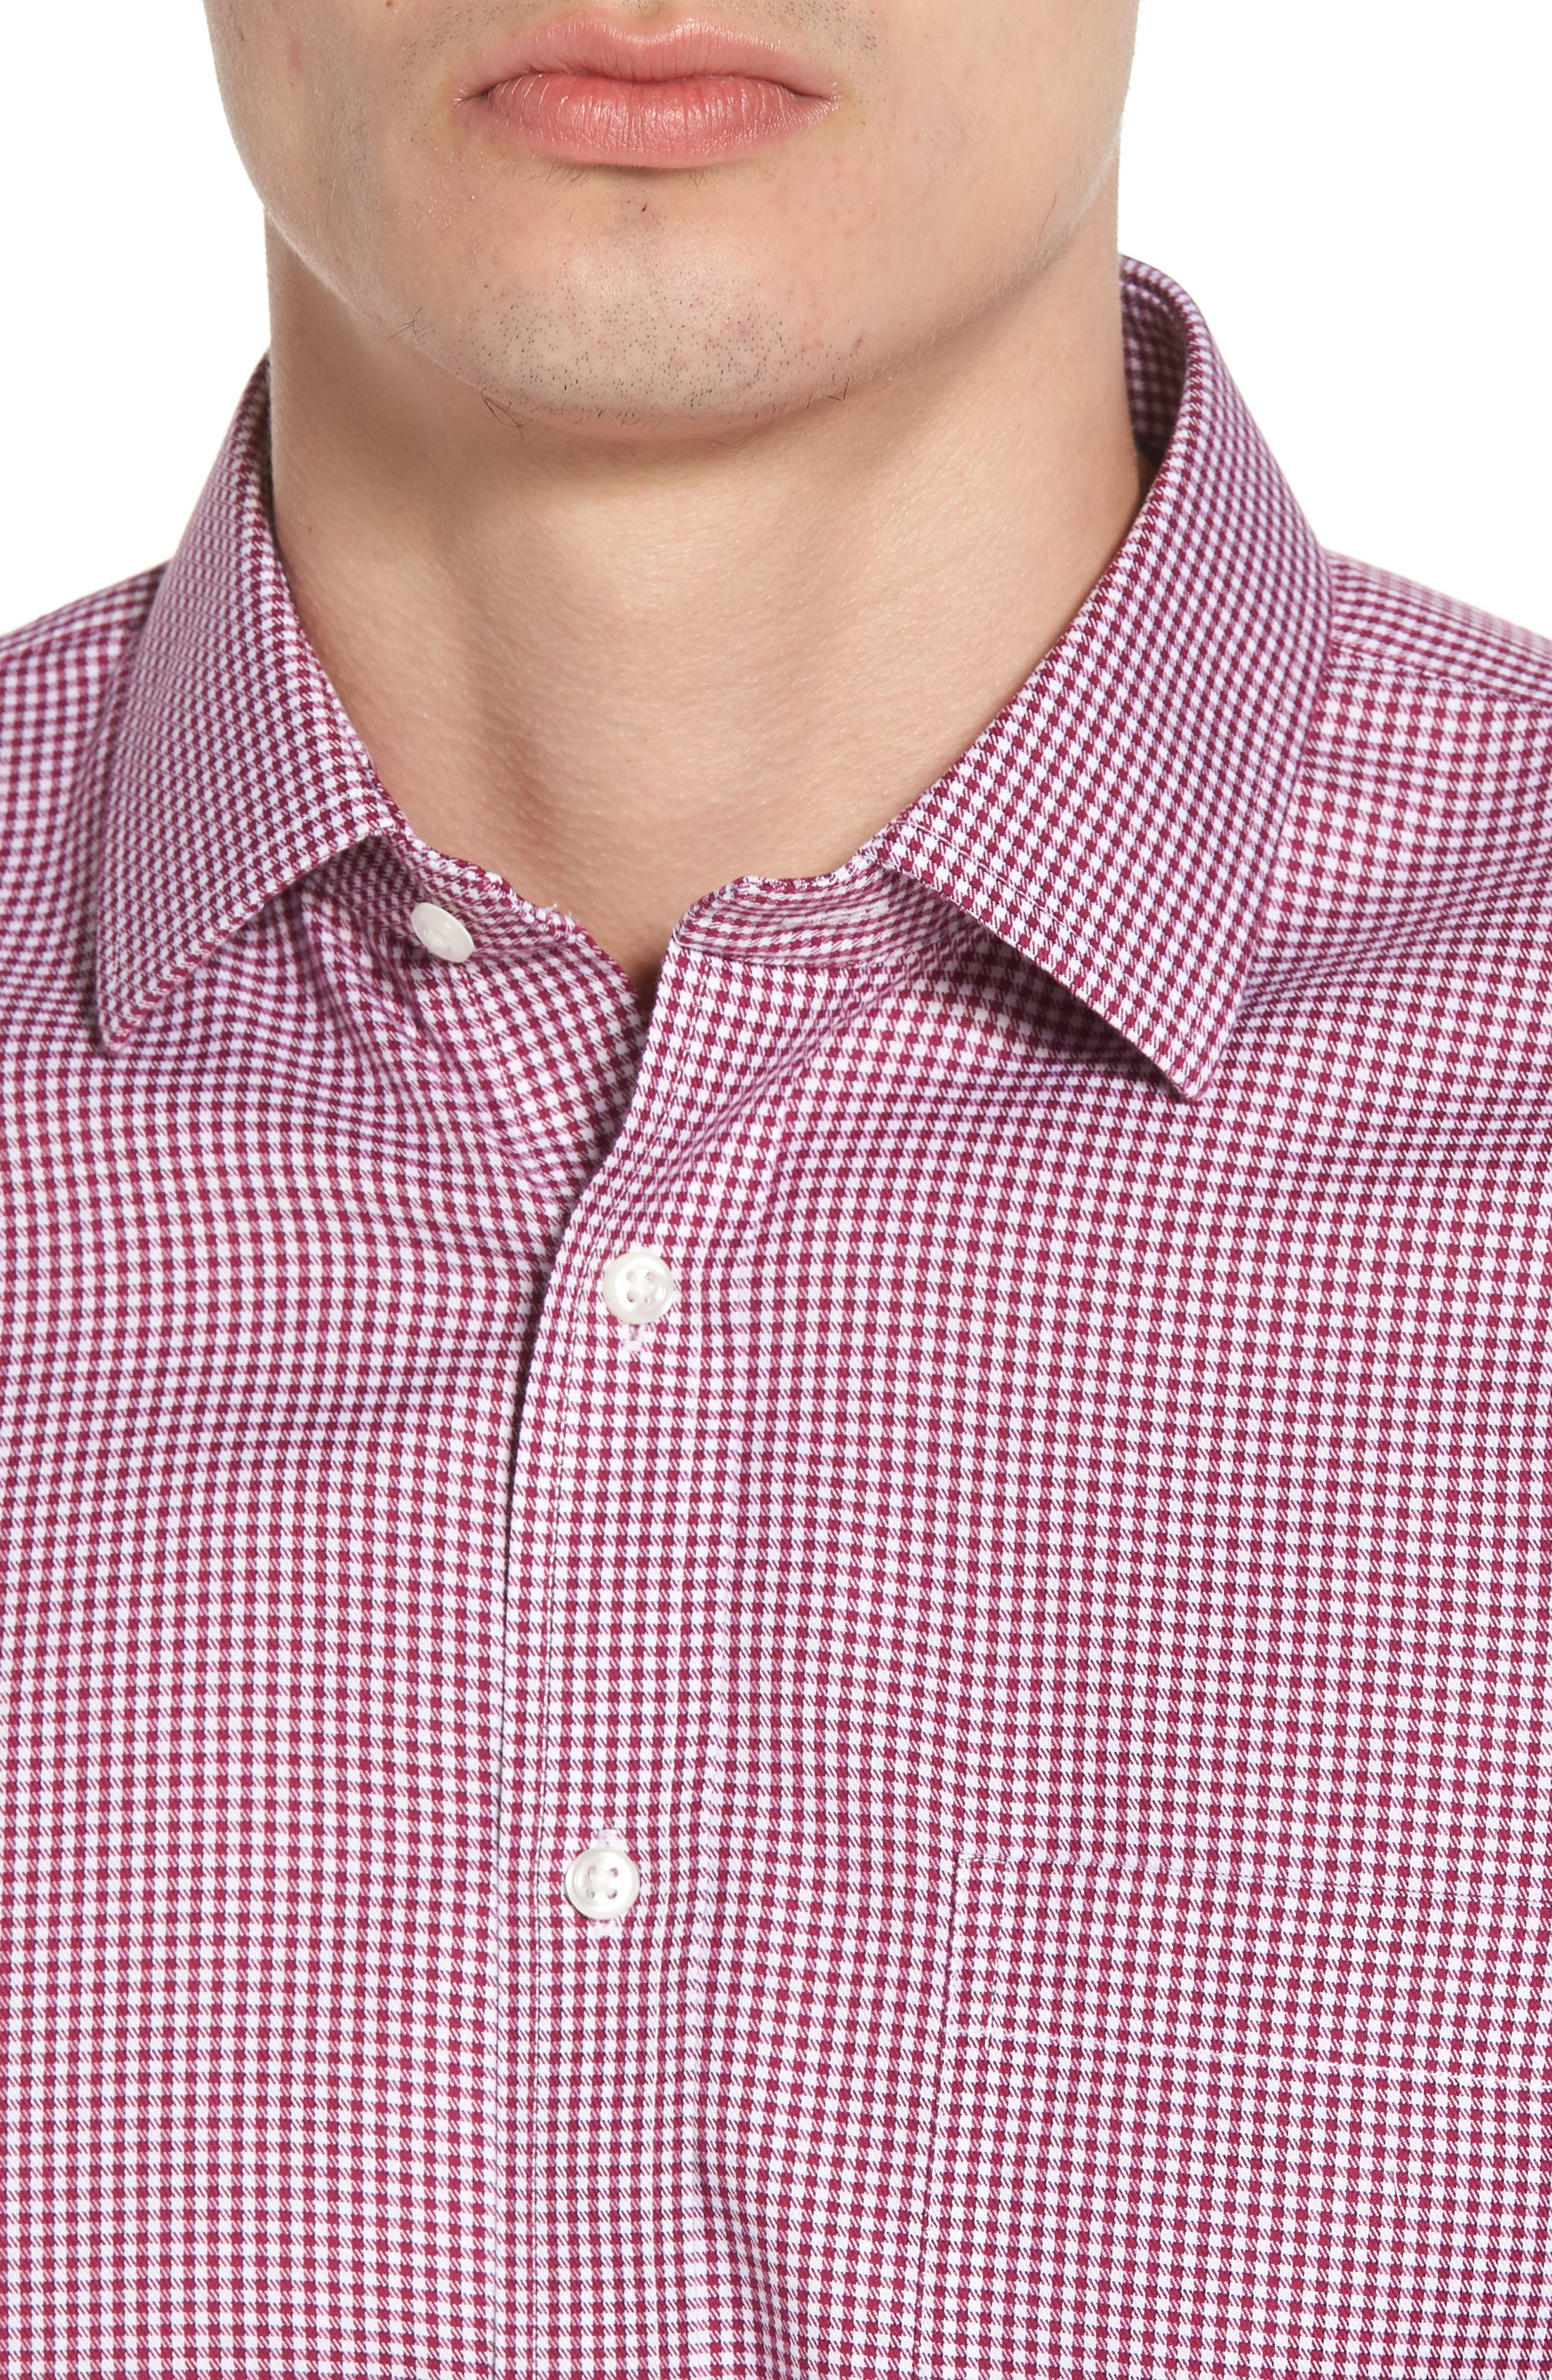 Smartcare<sup>™</sup> Trim Fit Mini Check Dress Shirt,                             Alternate thumbnail 2, color,                             Purple Boysen